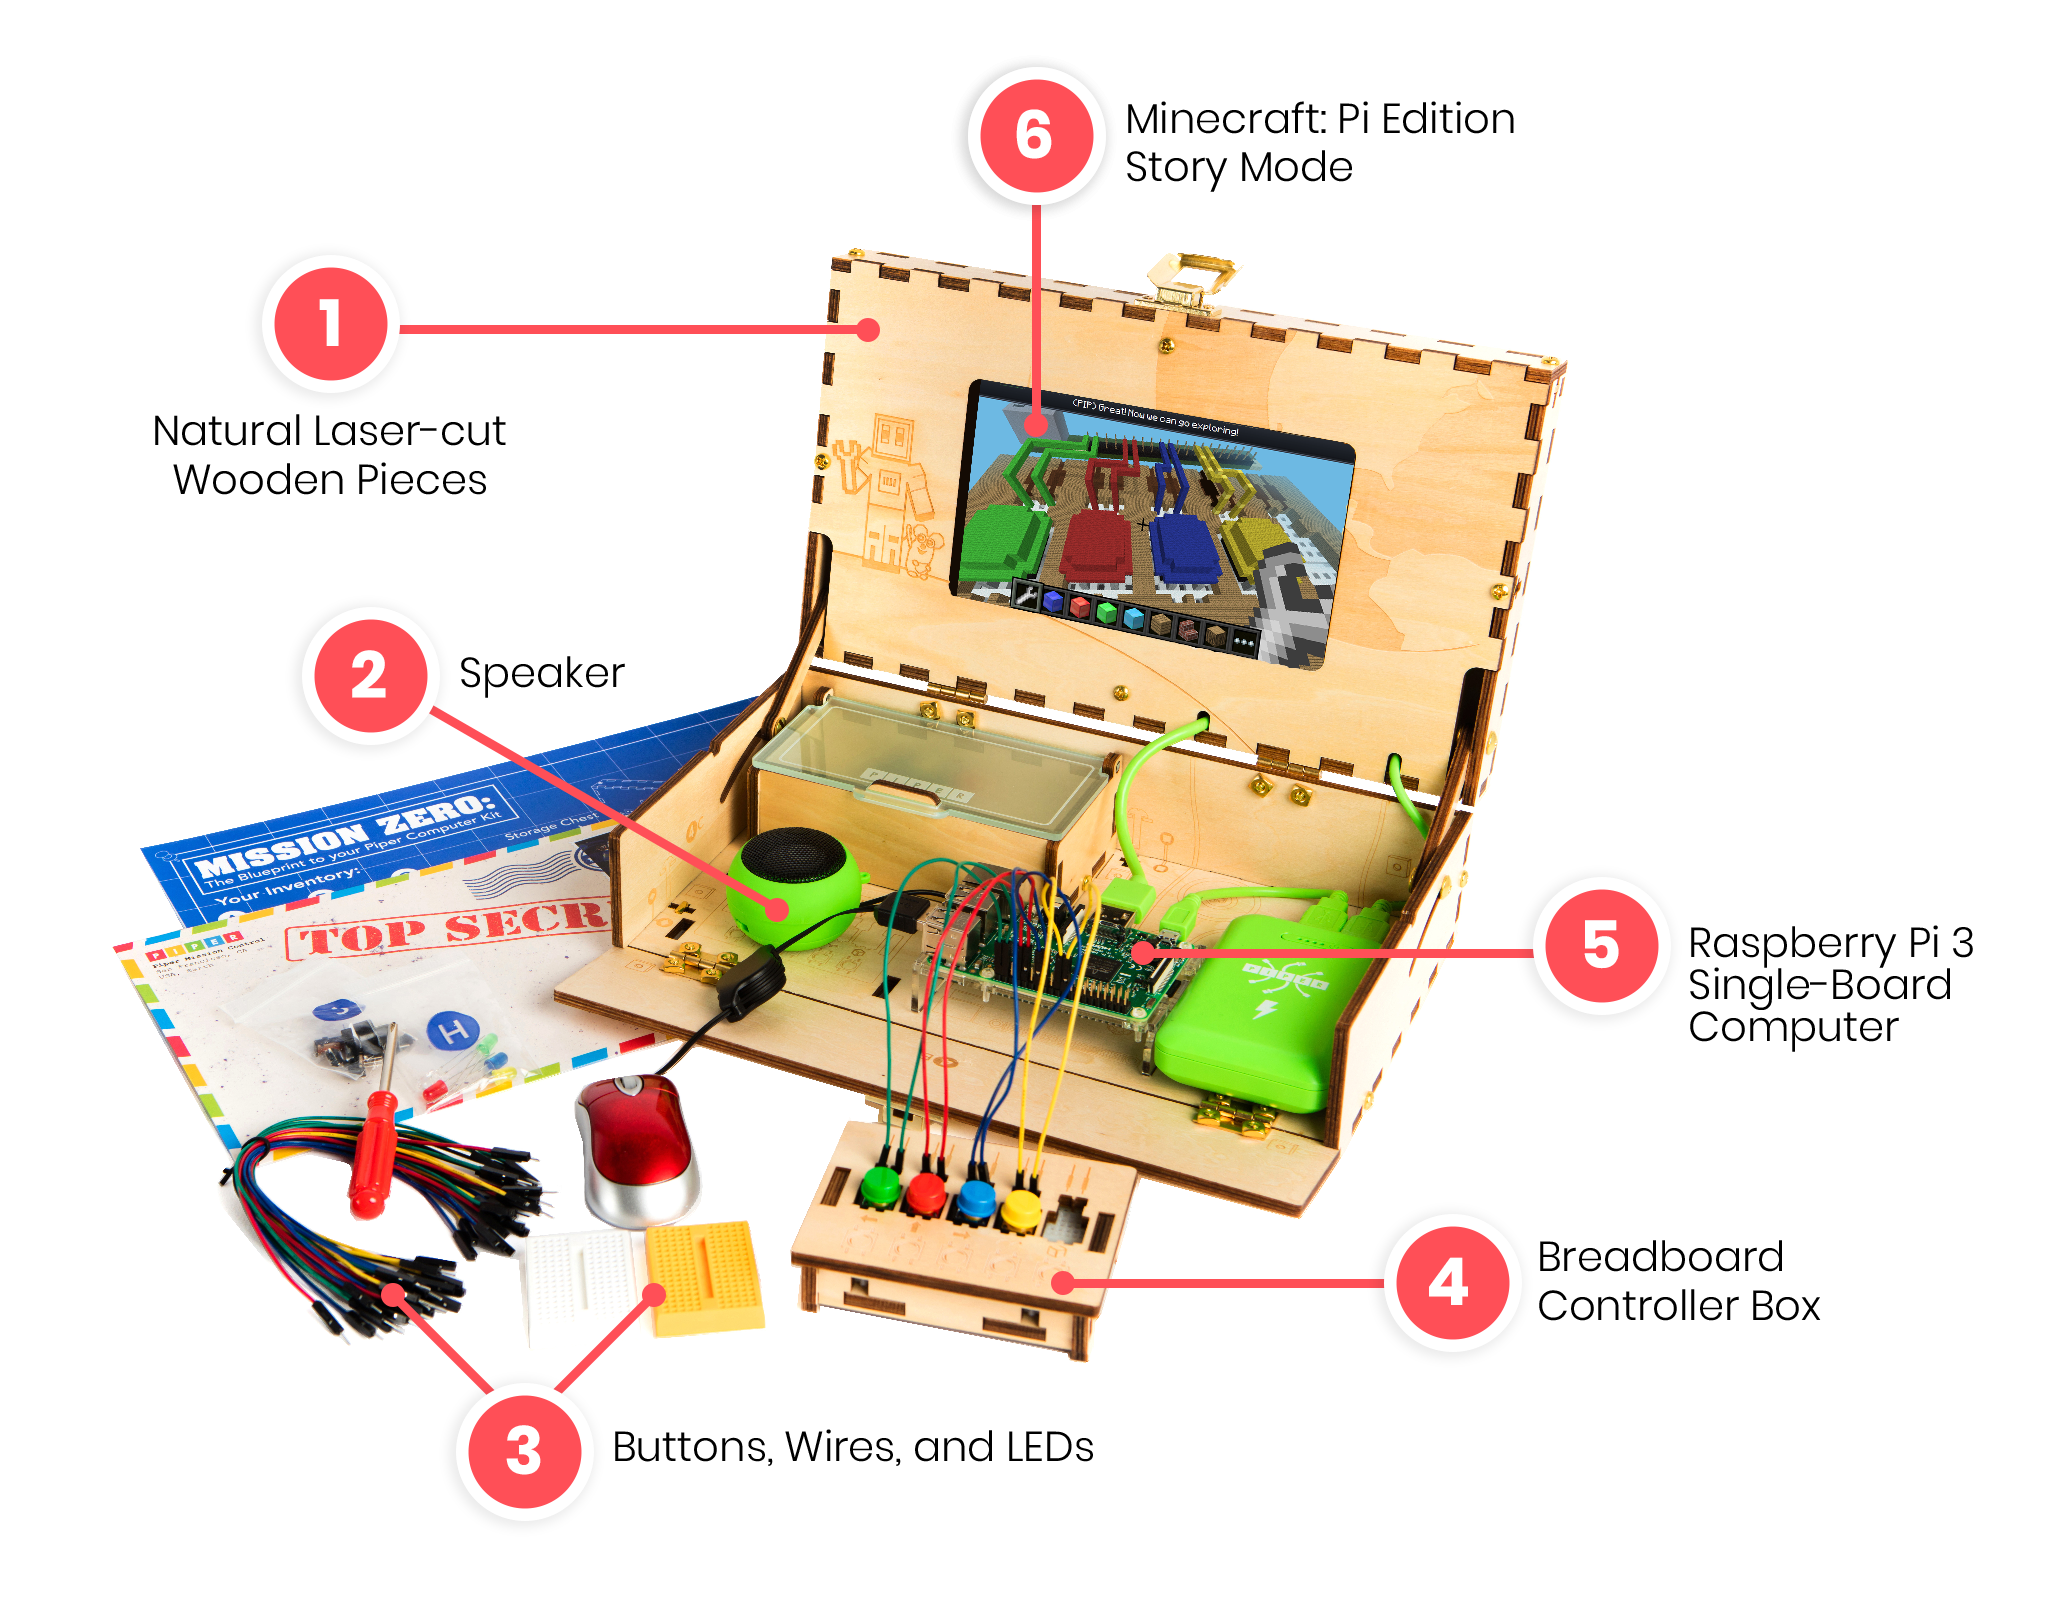 Piper Computer Kit 2 Way Switch Minecraft Whats In The Box